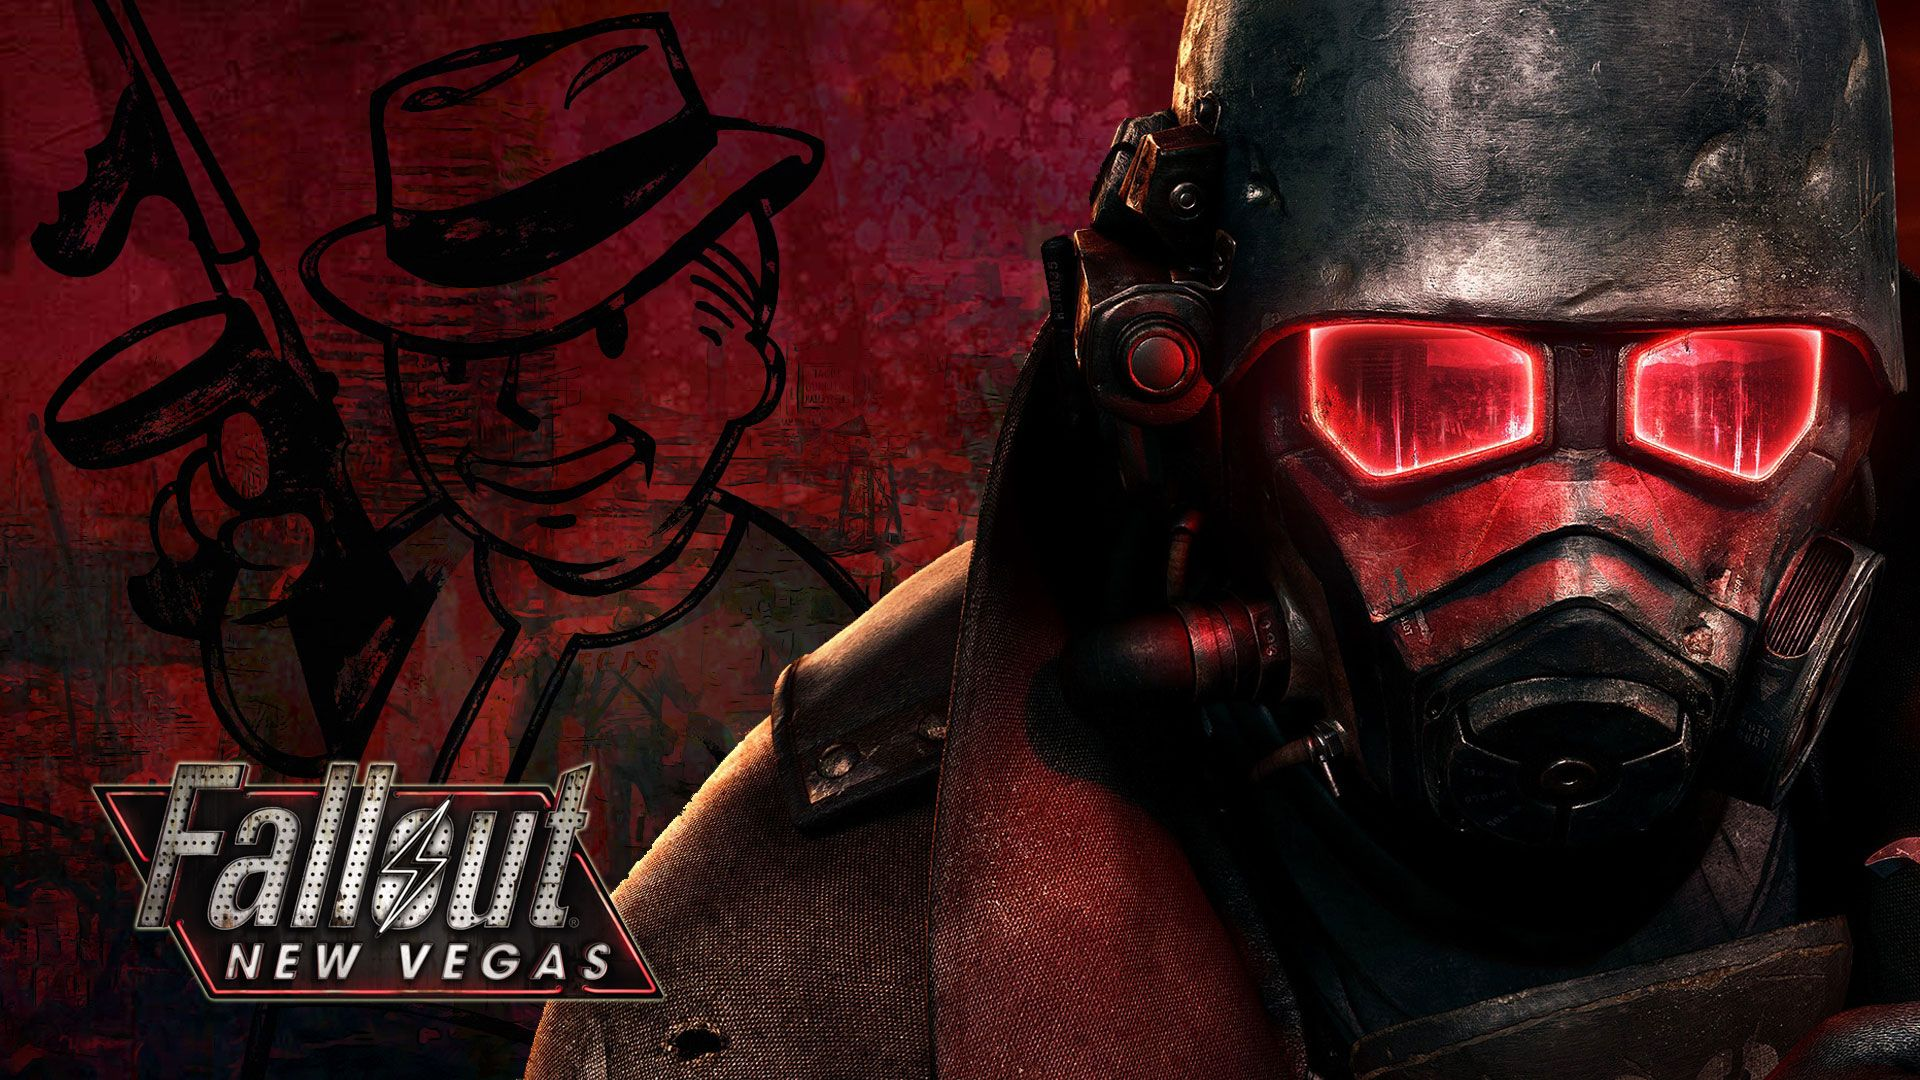 Fallout New Vegas 1 Fallout Wallpaper Gaming Wallpapers Android Wallpaper Hd Nature